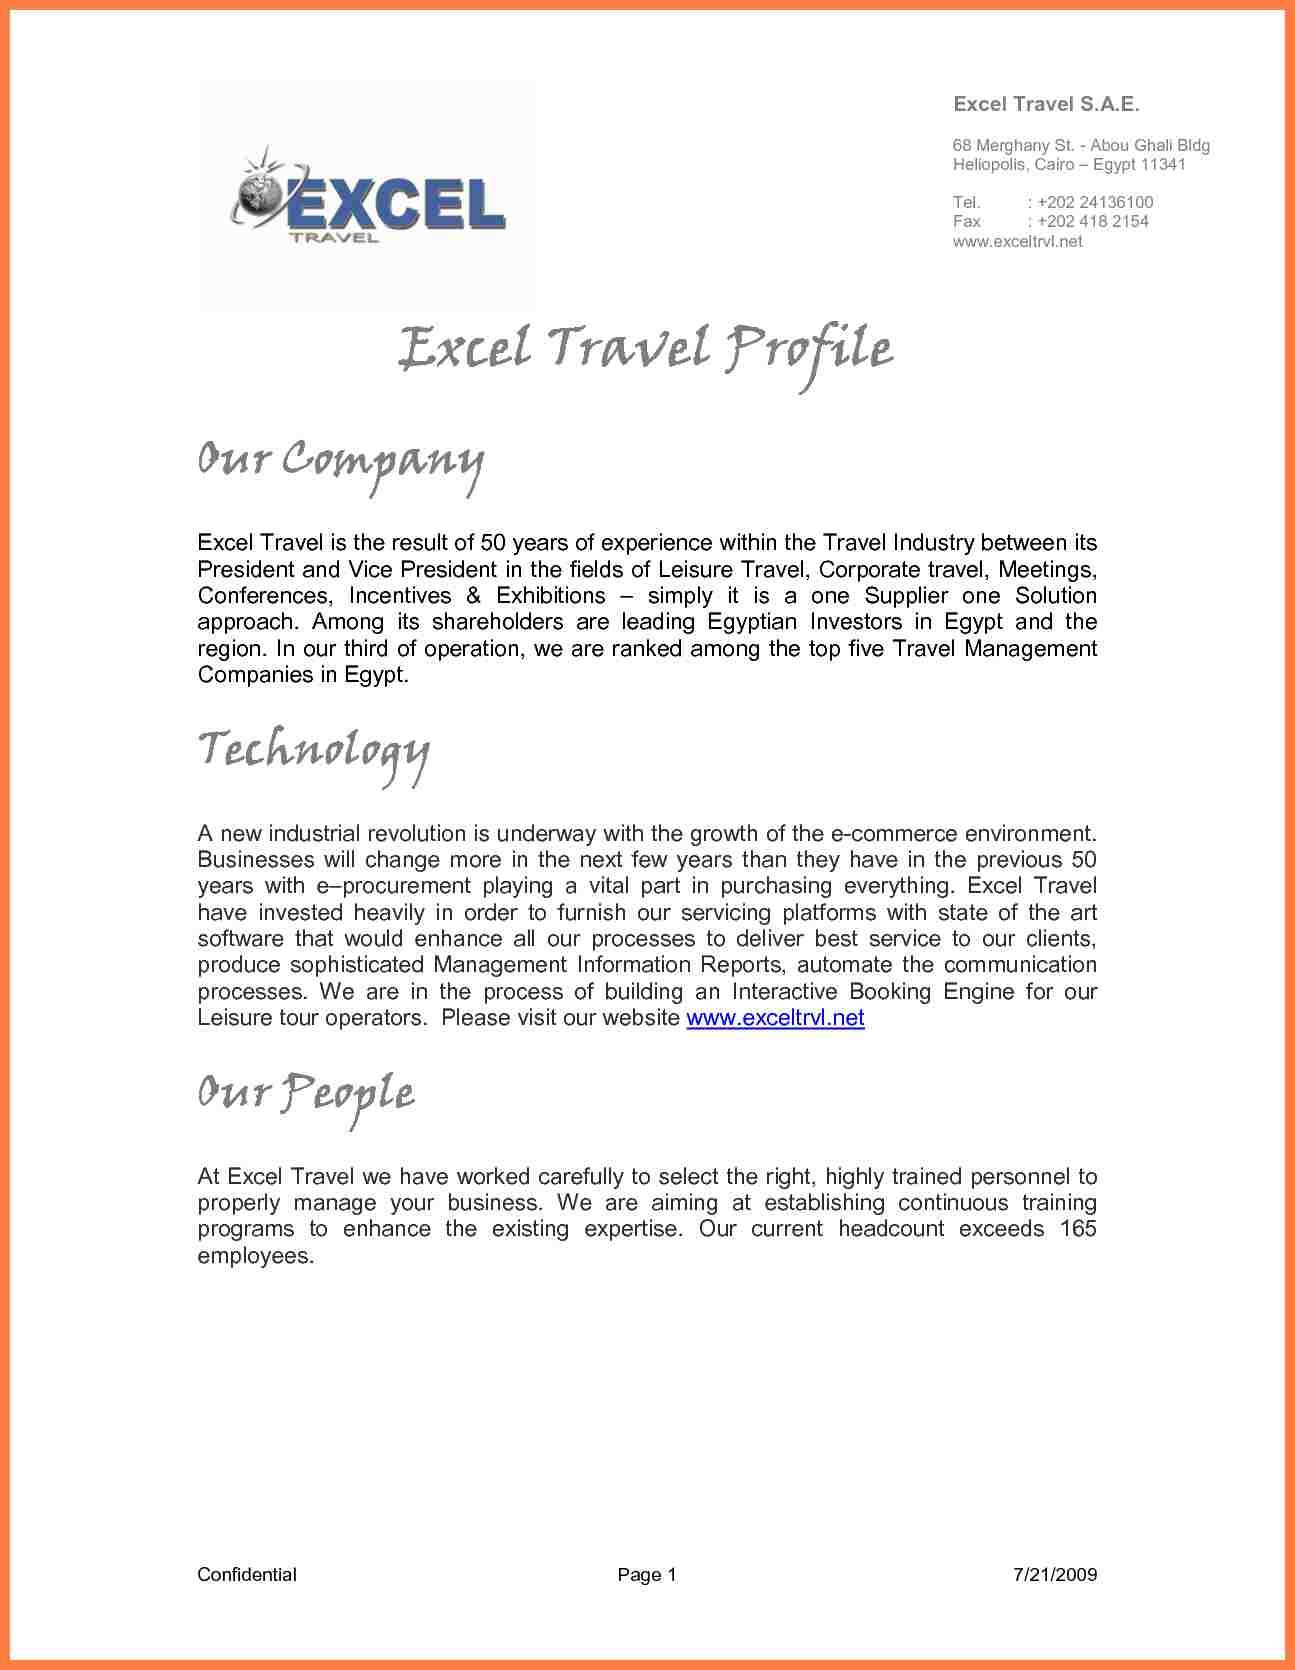 Sample Of Company Profile For Small Business  Company Letterhead Throughout Company Profile Template For Small Business